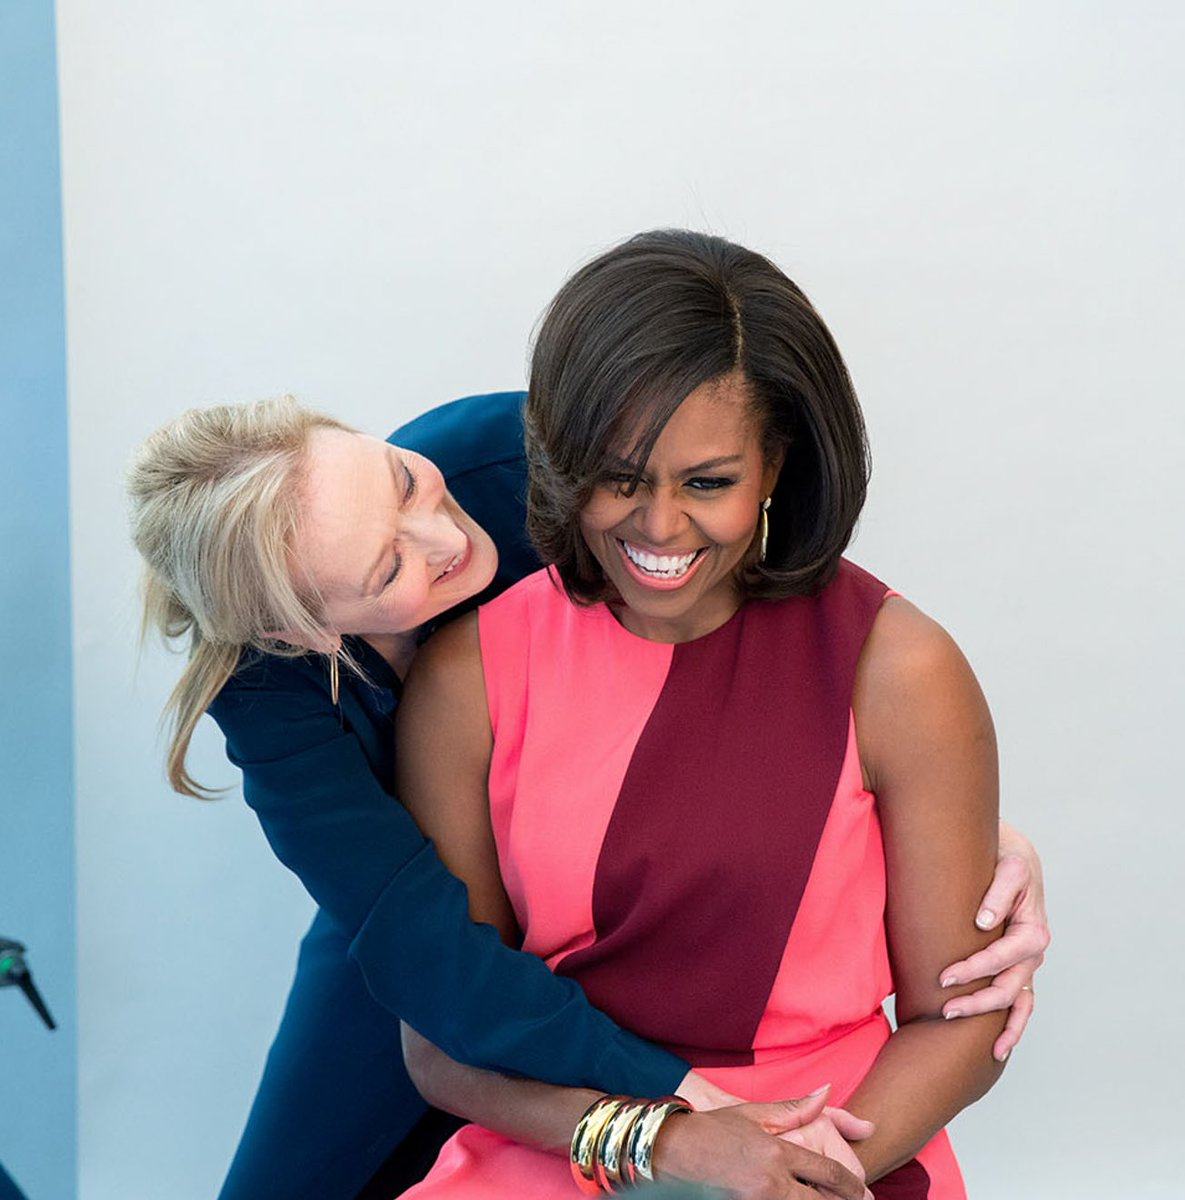 meryl streep + michelle obama are the iconic duo i never knew i needed <br>http://pic.twitter.com/WTgifrGdaf